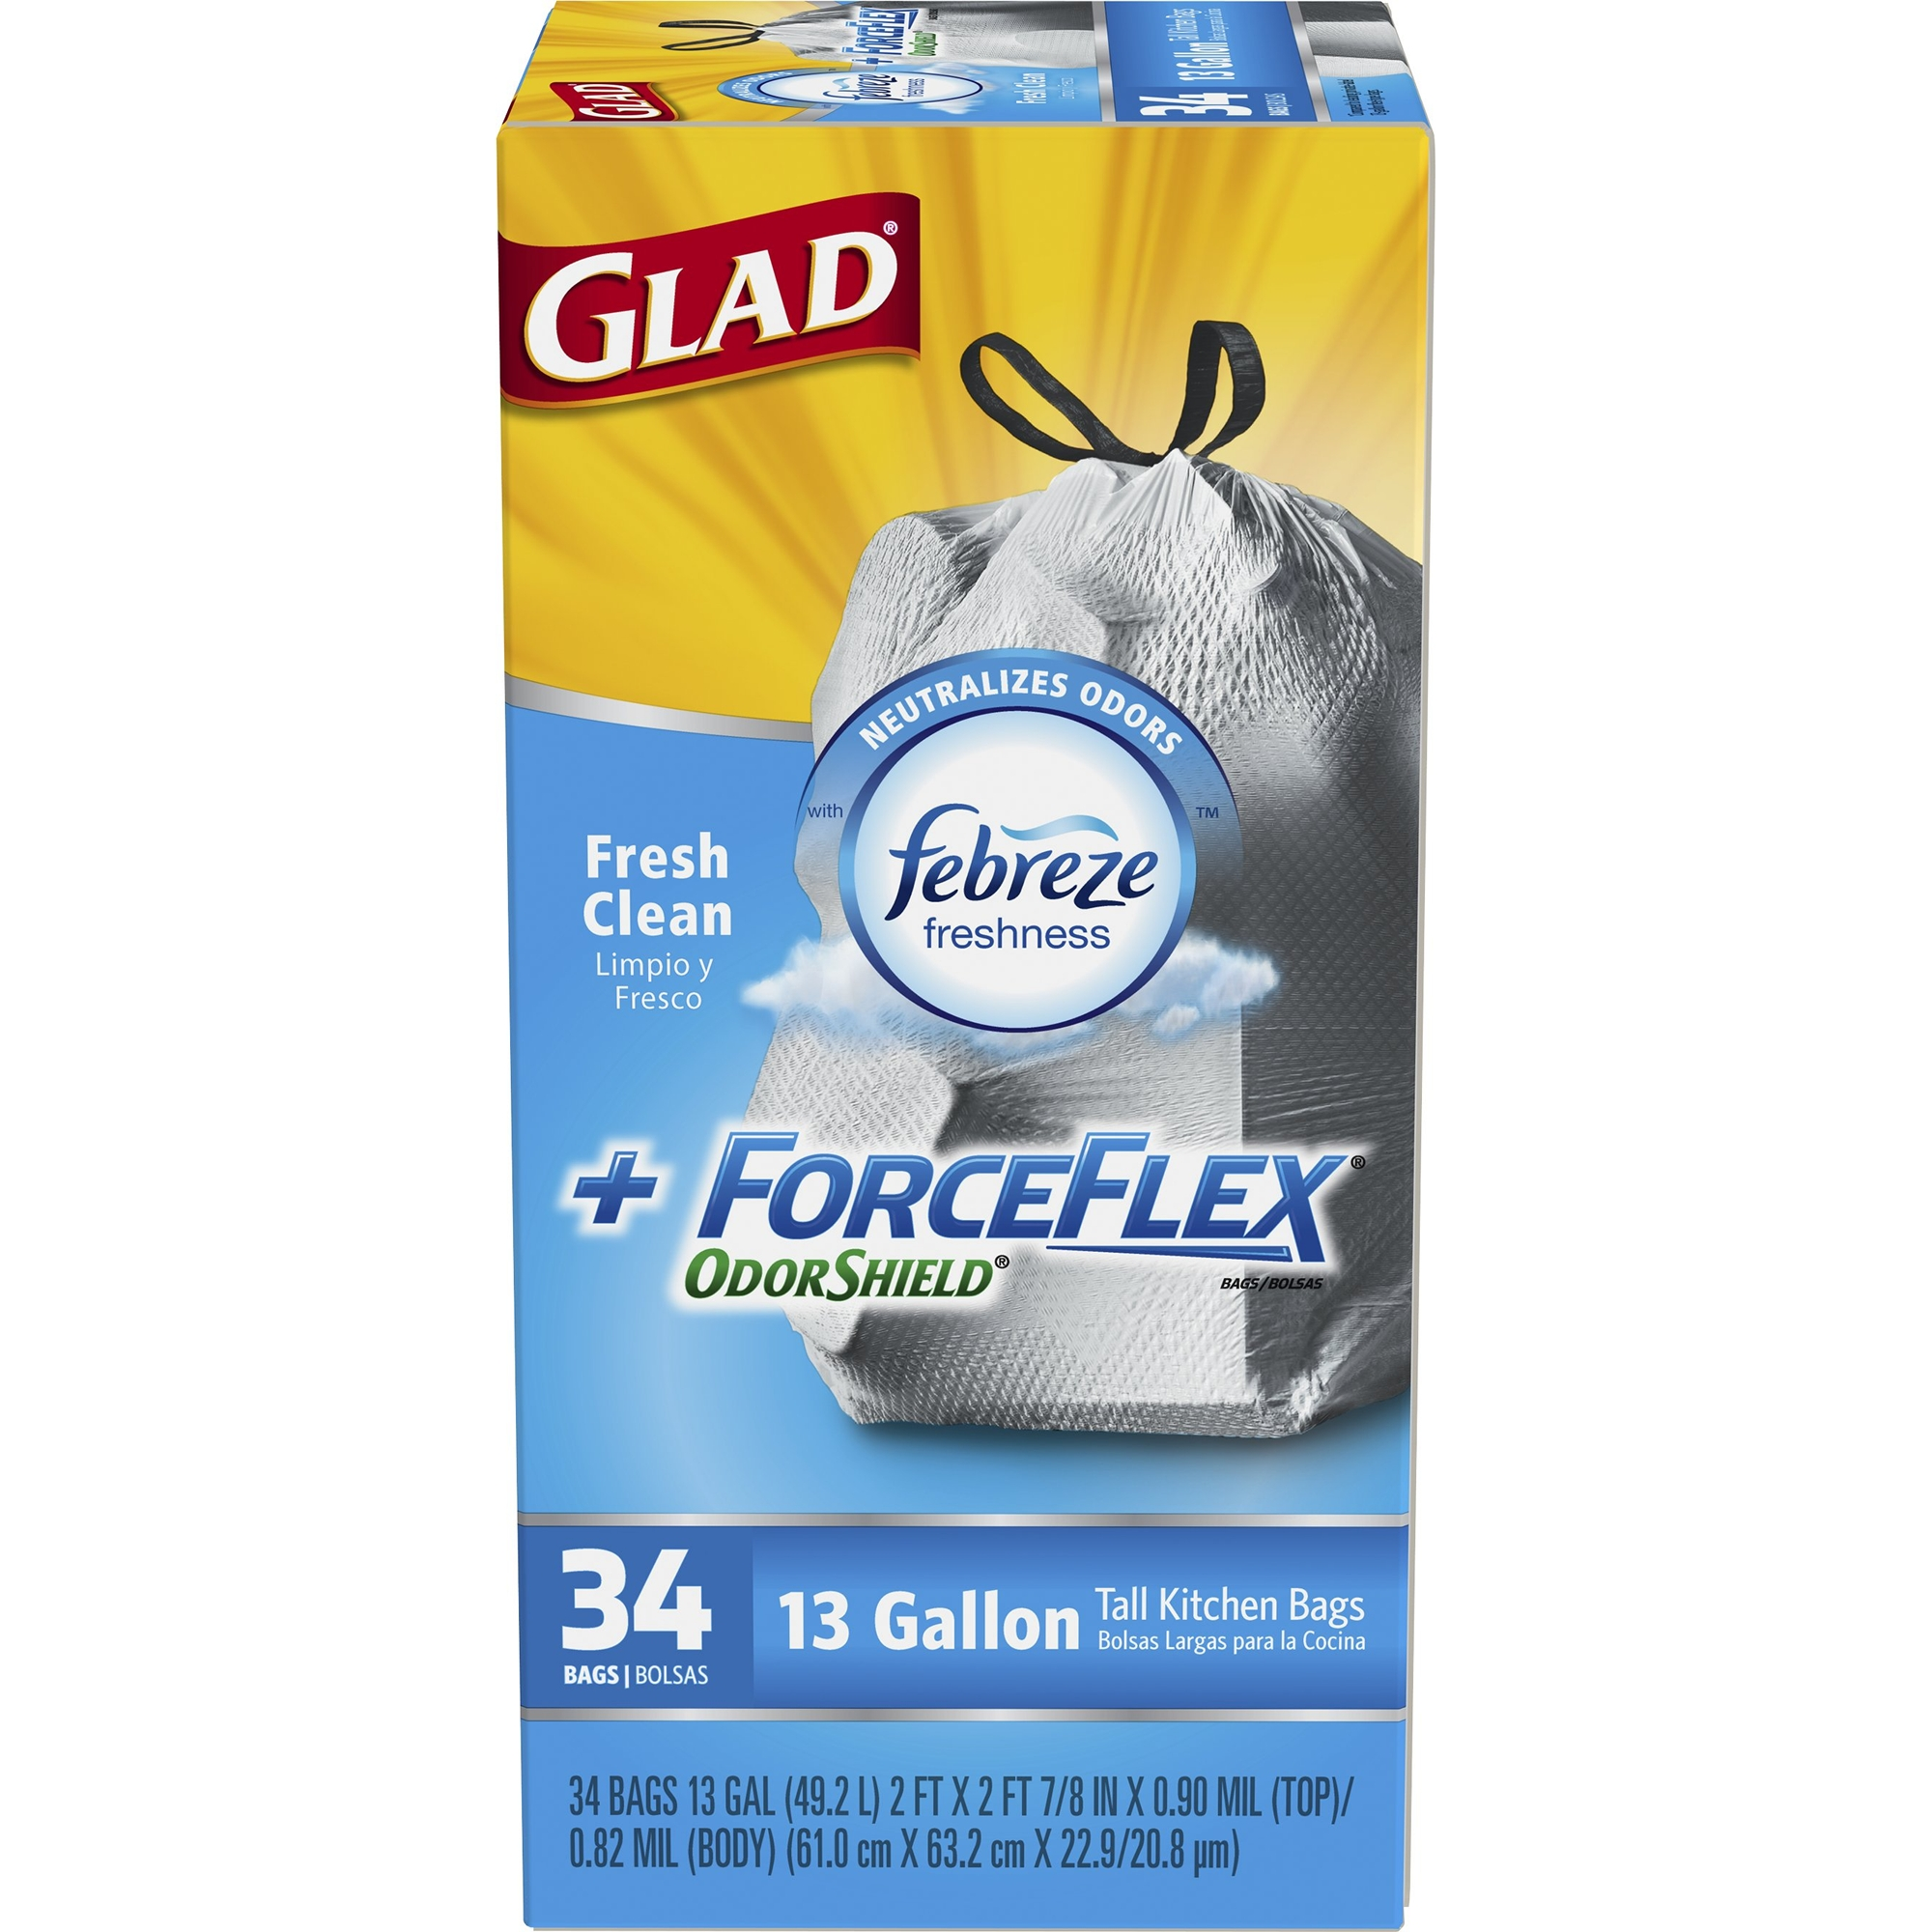 Glad ForceFlex OdorShield Tall Kitchen Drawstring Trash Bags, Fresh Clean, 13 Gallon, 34 Count